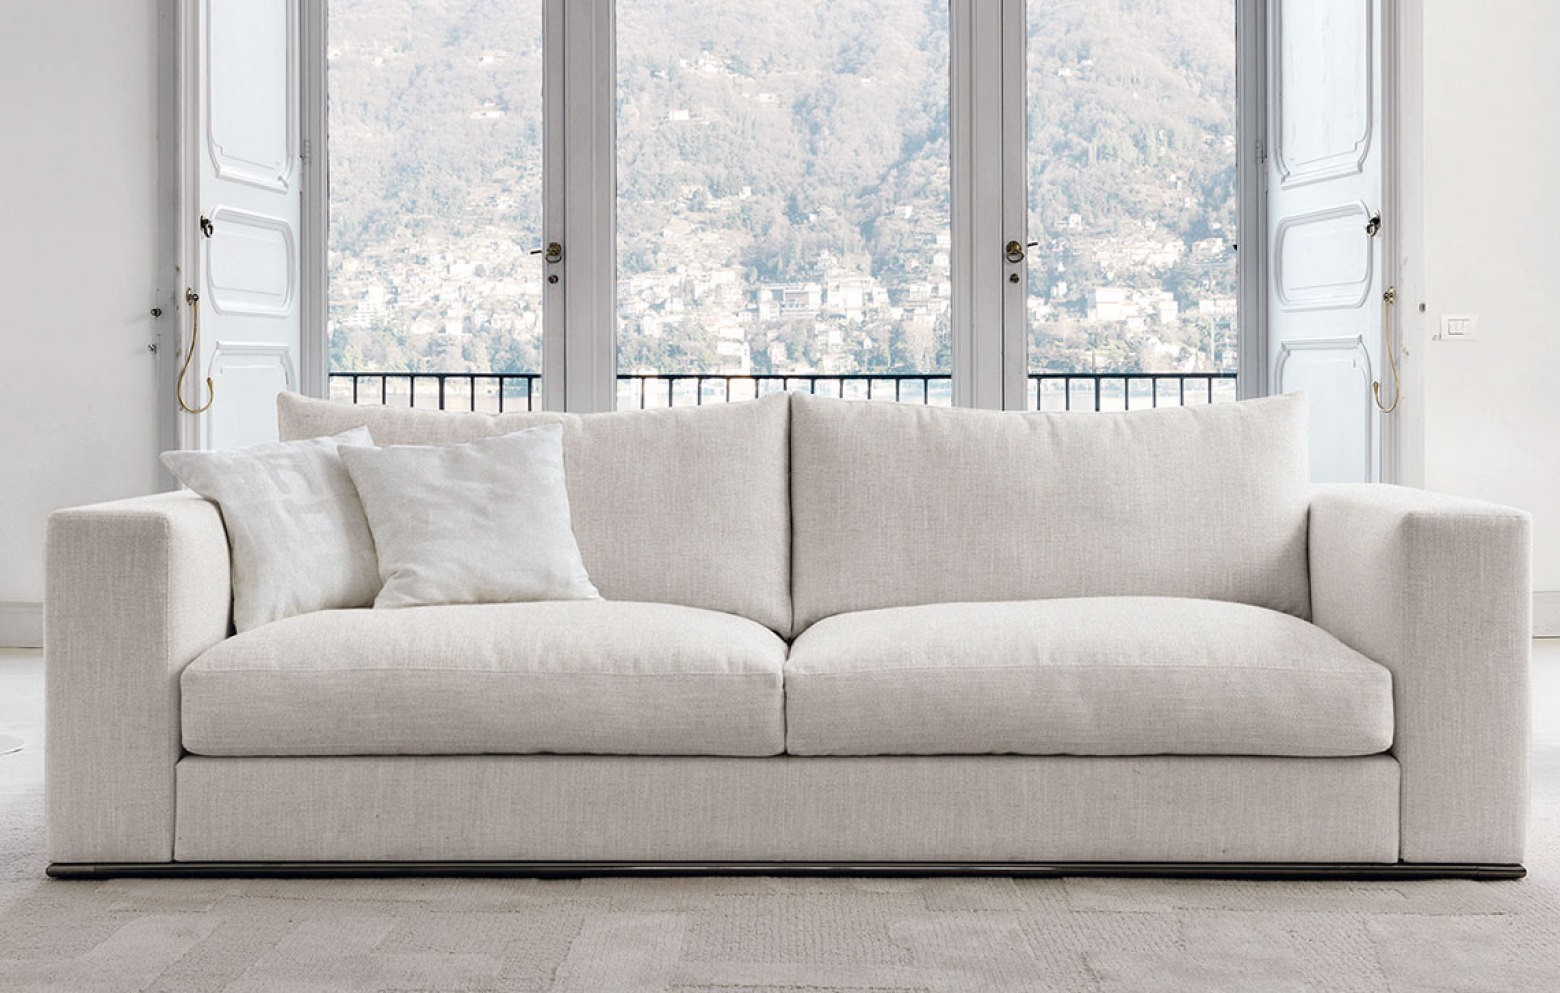 OZIUM Einzelsofa   Sofas   ONLINE OUTLET   Who's perfect.